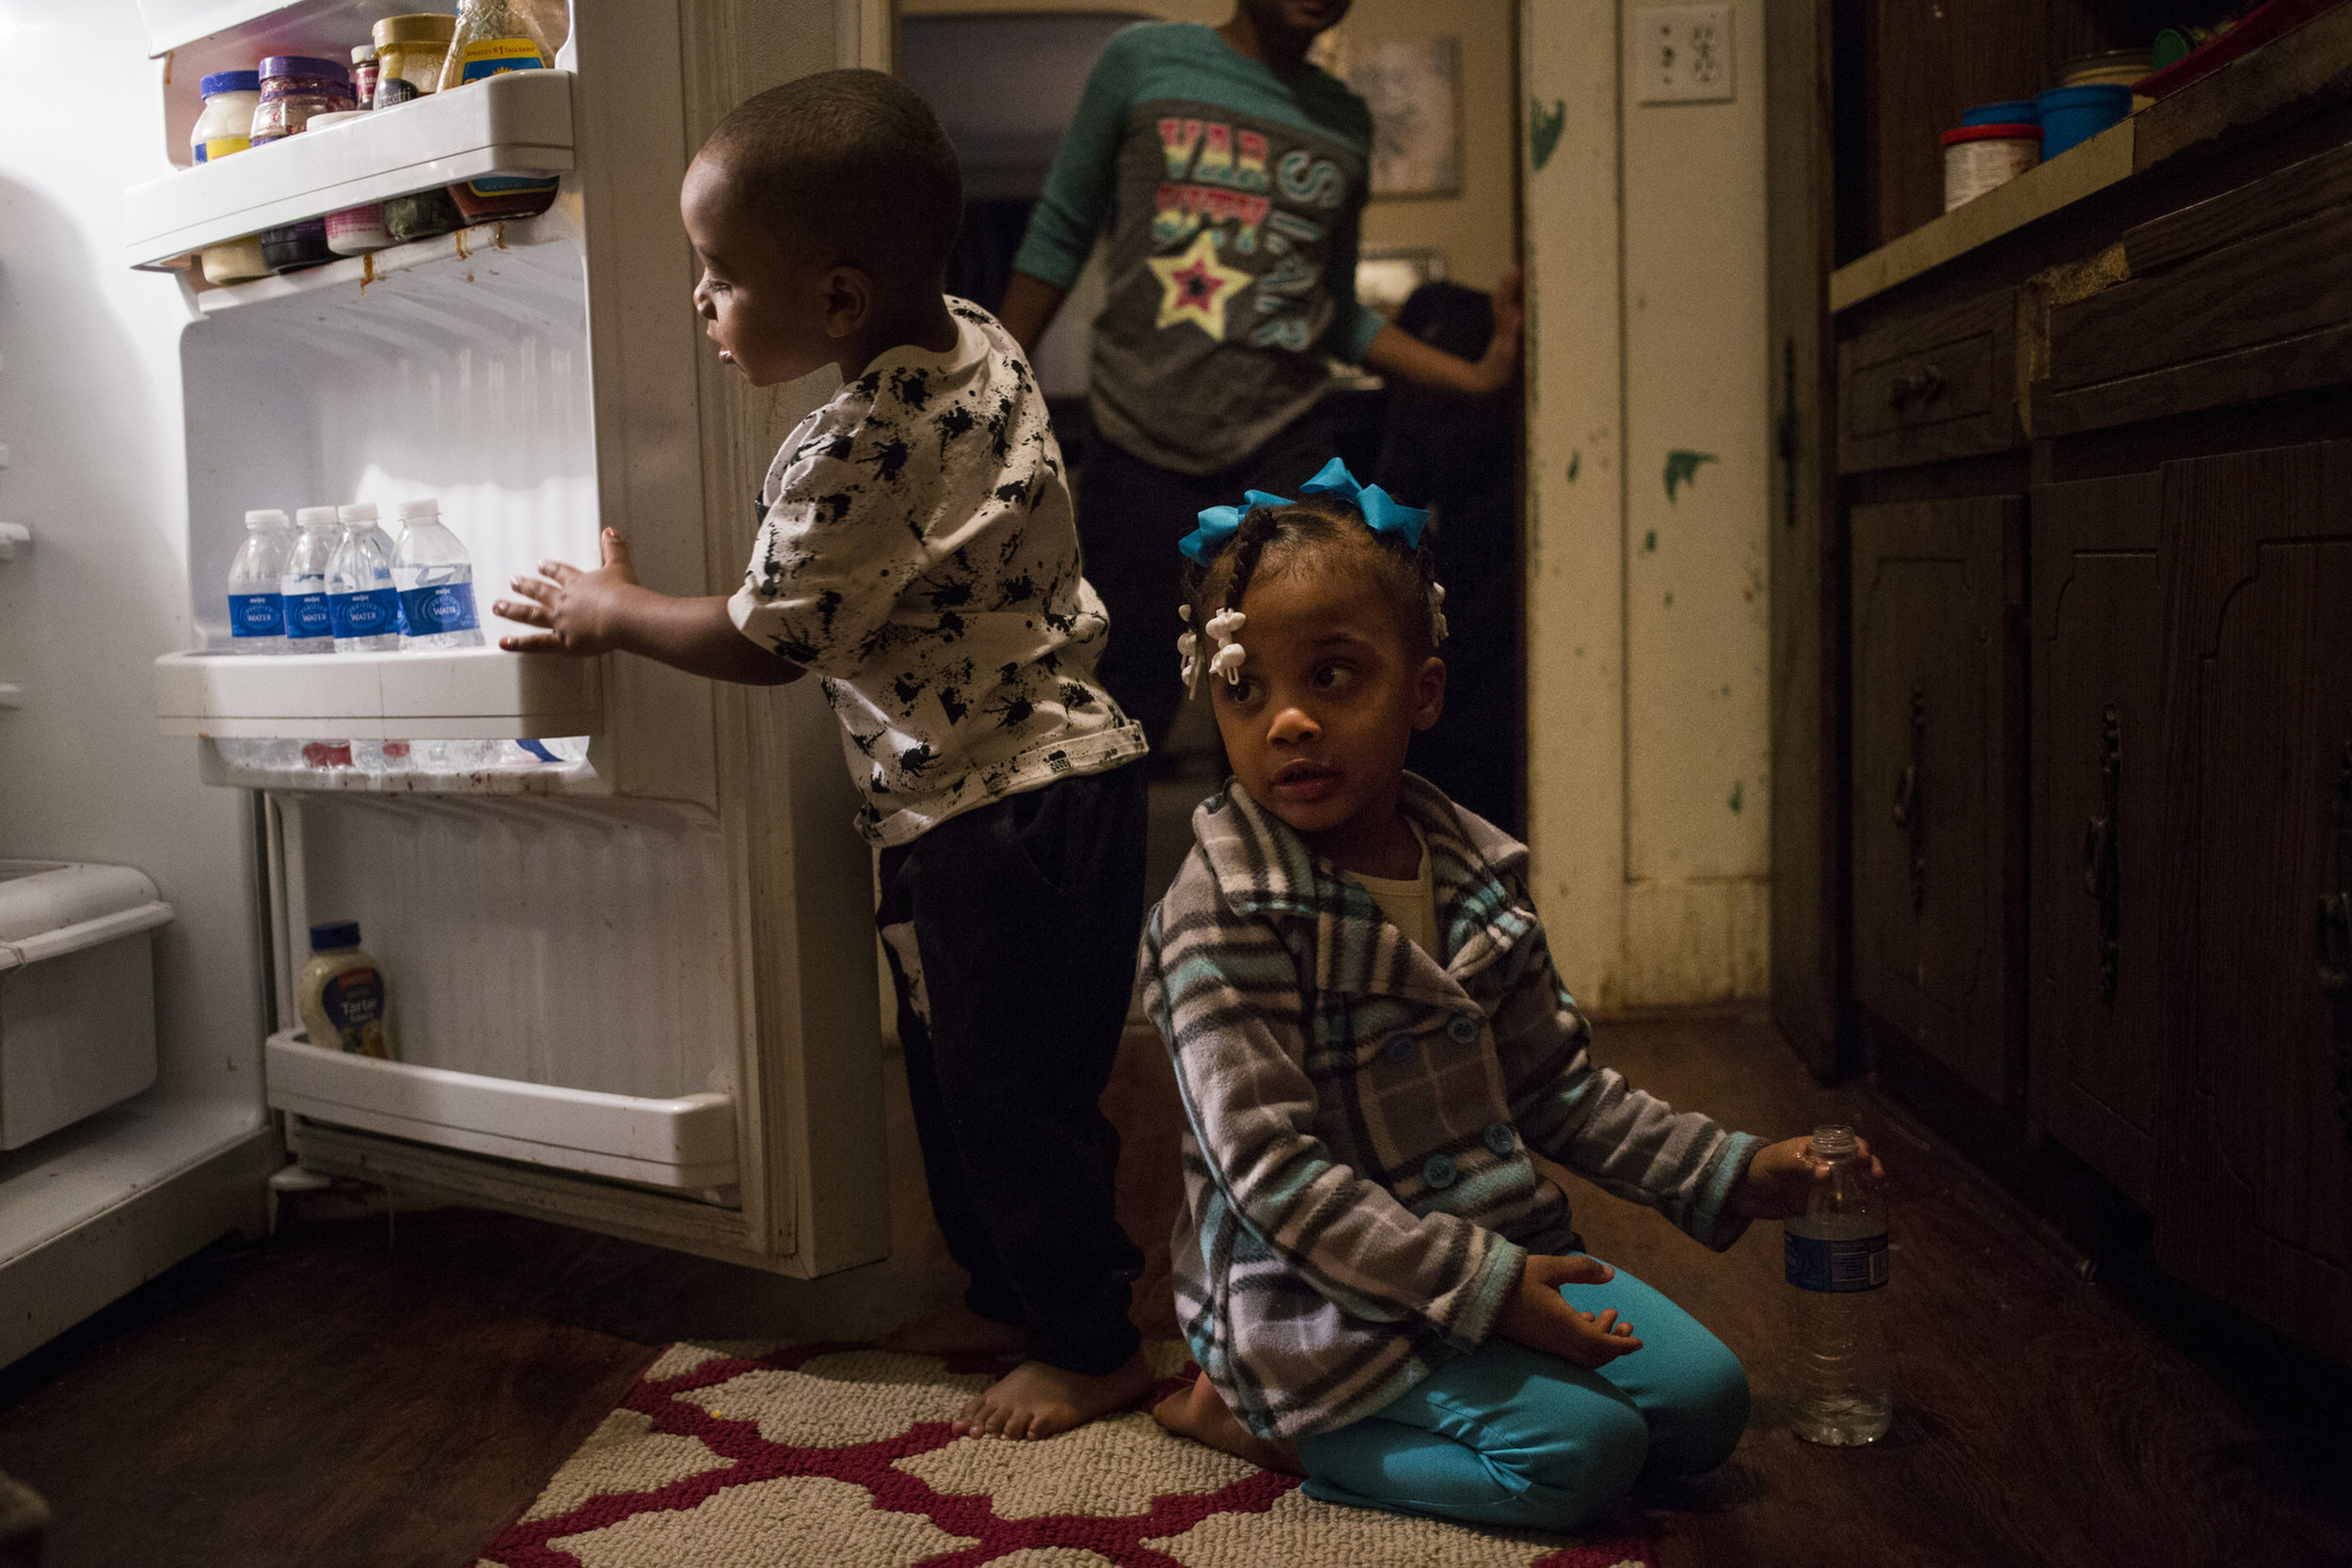 Journey Jones, 3, sits on the kitchen floor in her family's home as her brother Iveon Jones, 2, reaches for a bottled water. The pair are two of six children living in the home, all of whom have had elevated levels of lead in their blood. Their mother says she is at a loss as to what their futures hold. Iveon, she said, has already been displaying behavior issues, a common symptom of lead poisoning in children.